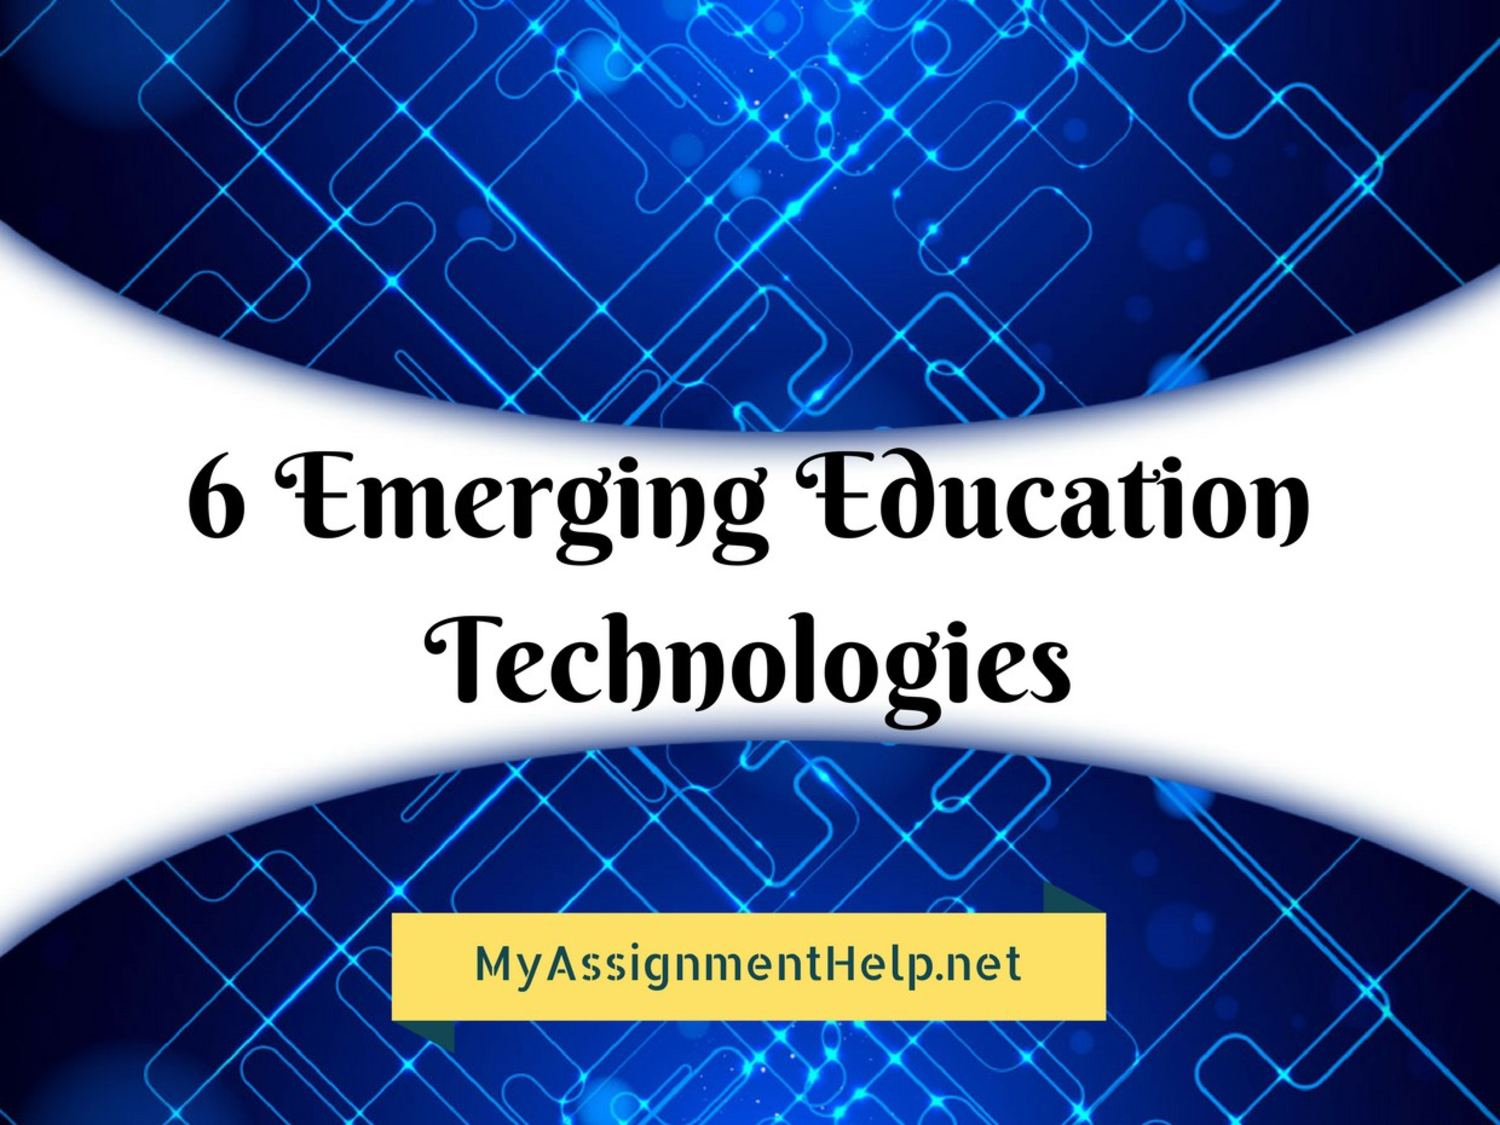 emergent computer technologies homework help Emergent technologies 4 important advantages of computer-aided design since its inception in the 1970s, computer-aided design or cad has been an invaluable tool for designers.